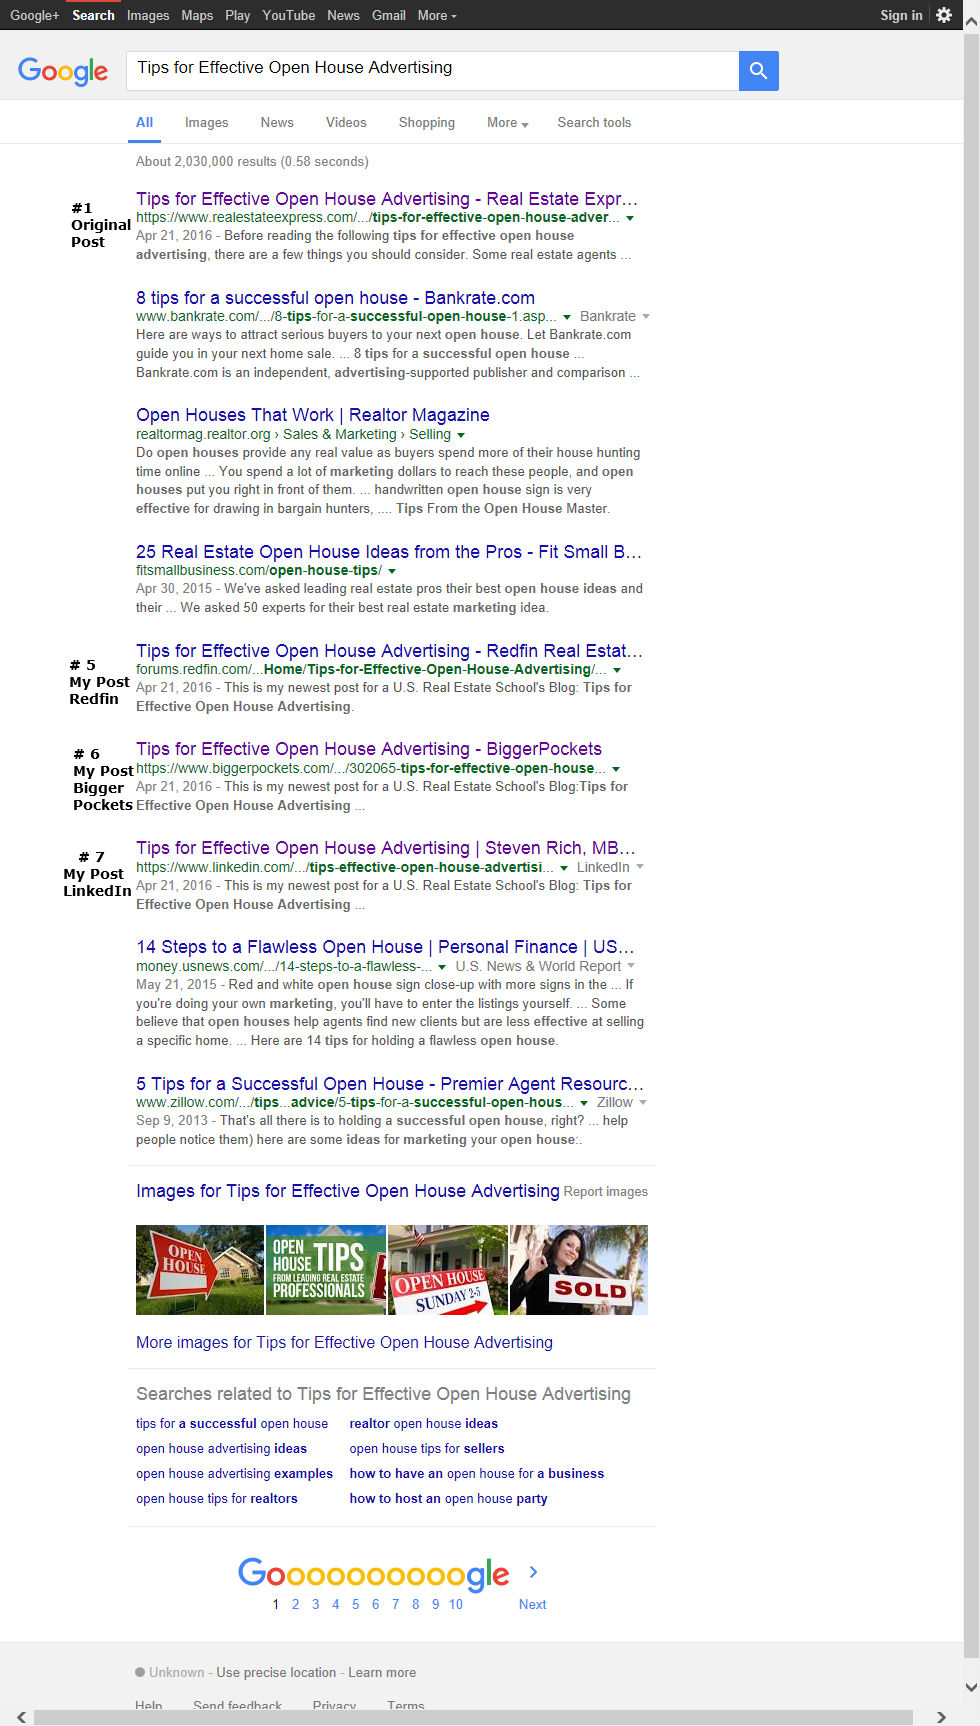 SCREENSHOT-OPEN-HOUSE-ADVERTISING-Tips-FINAL-3.jpg